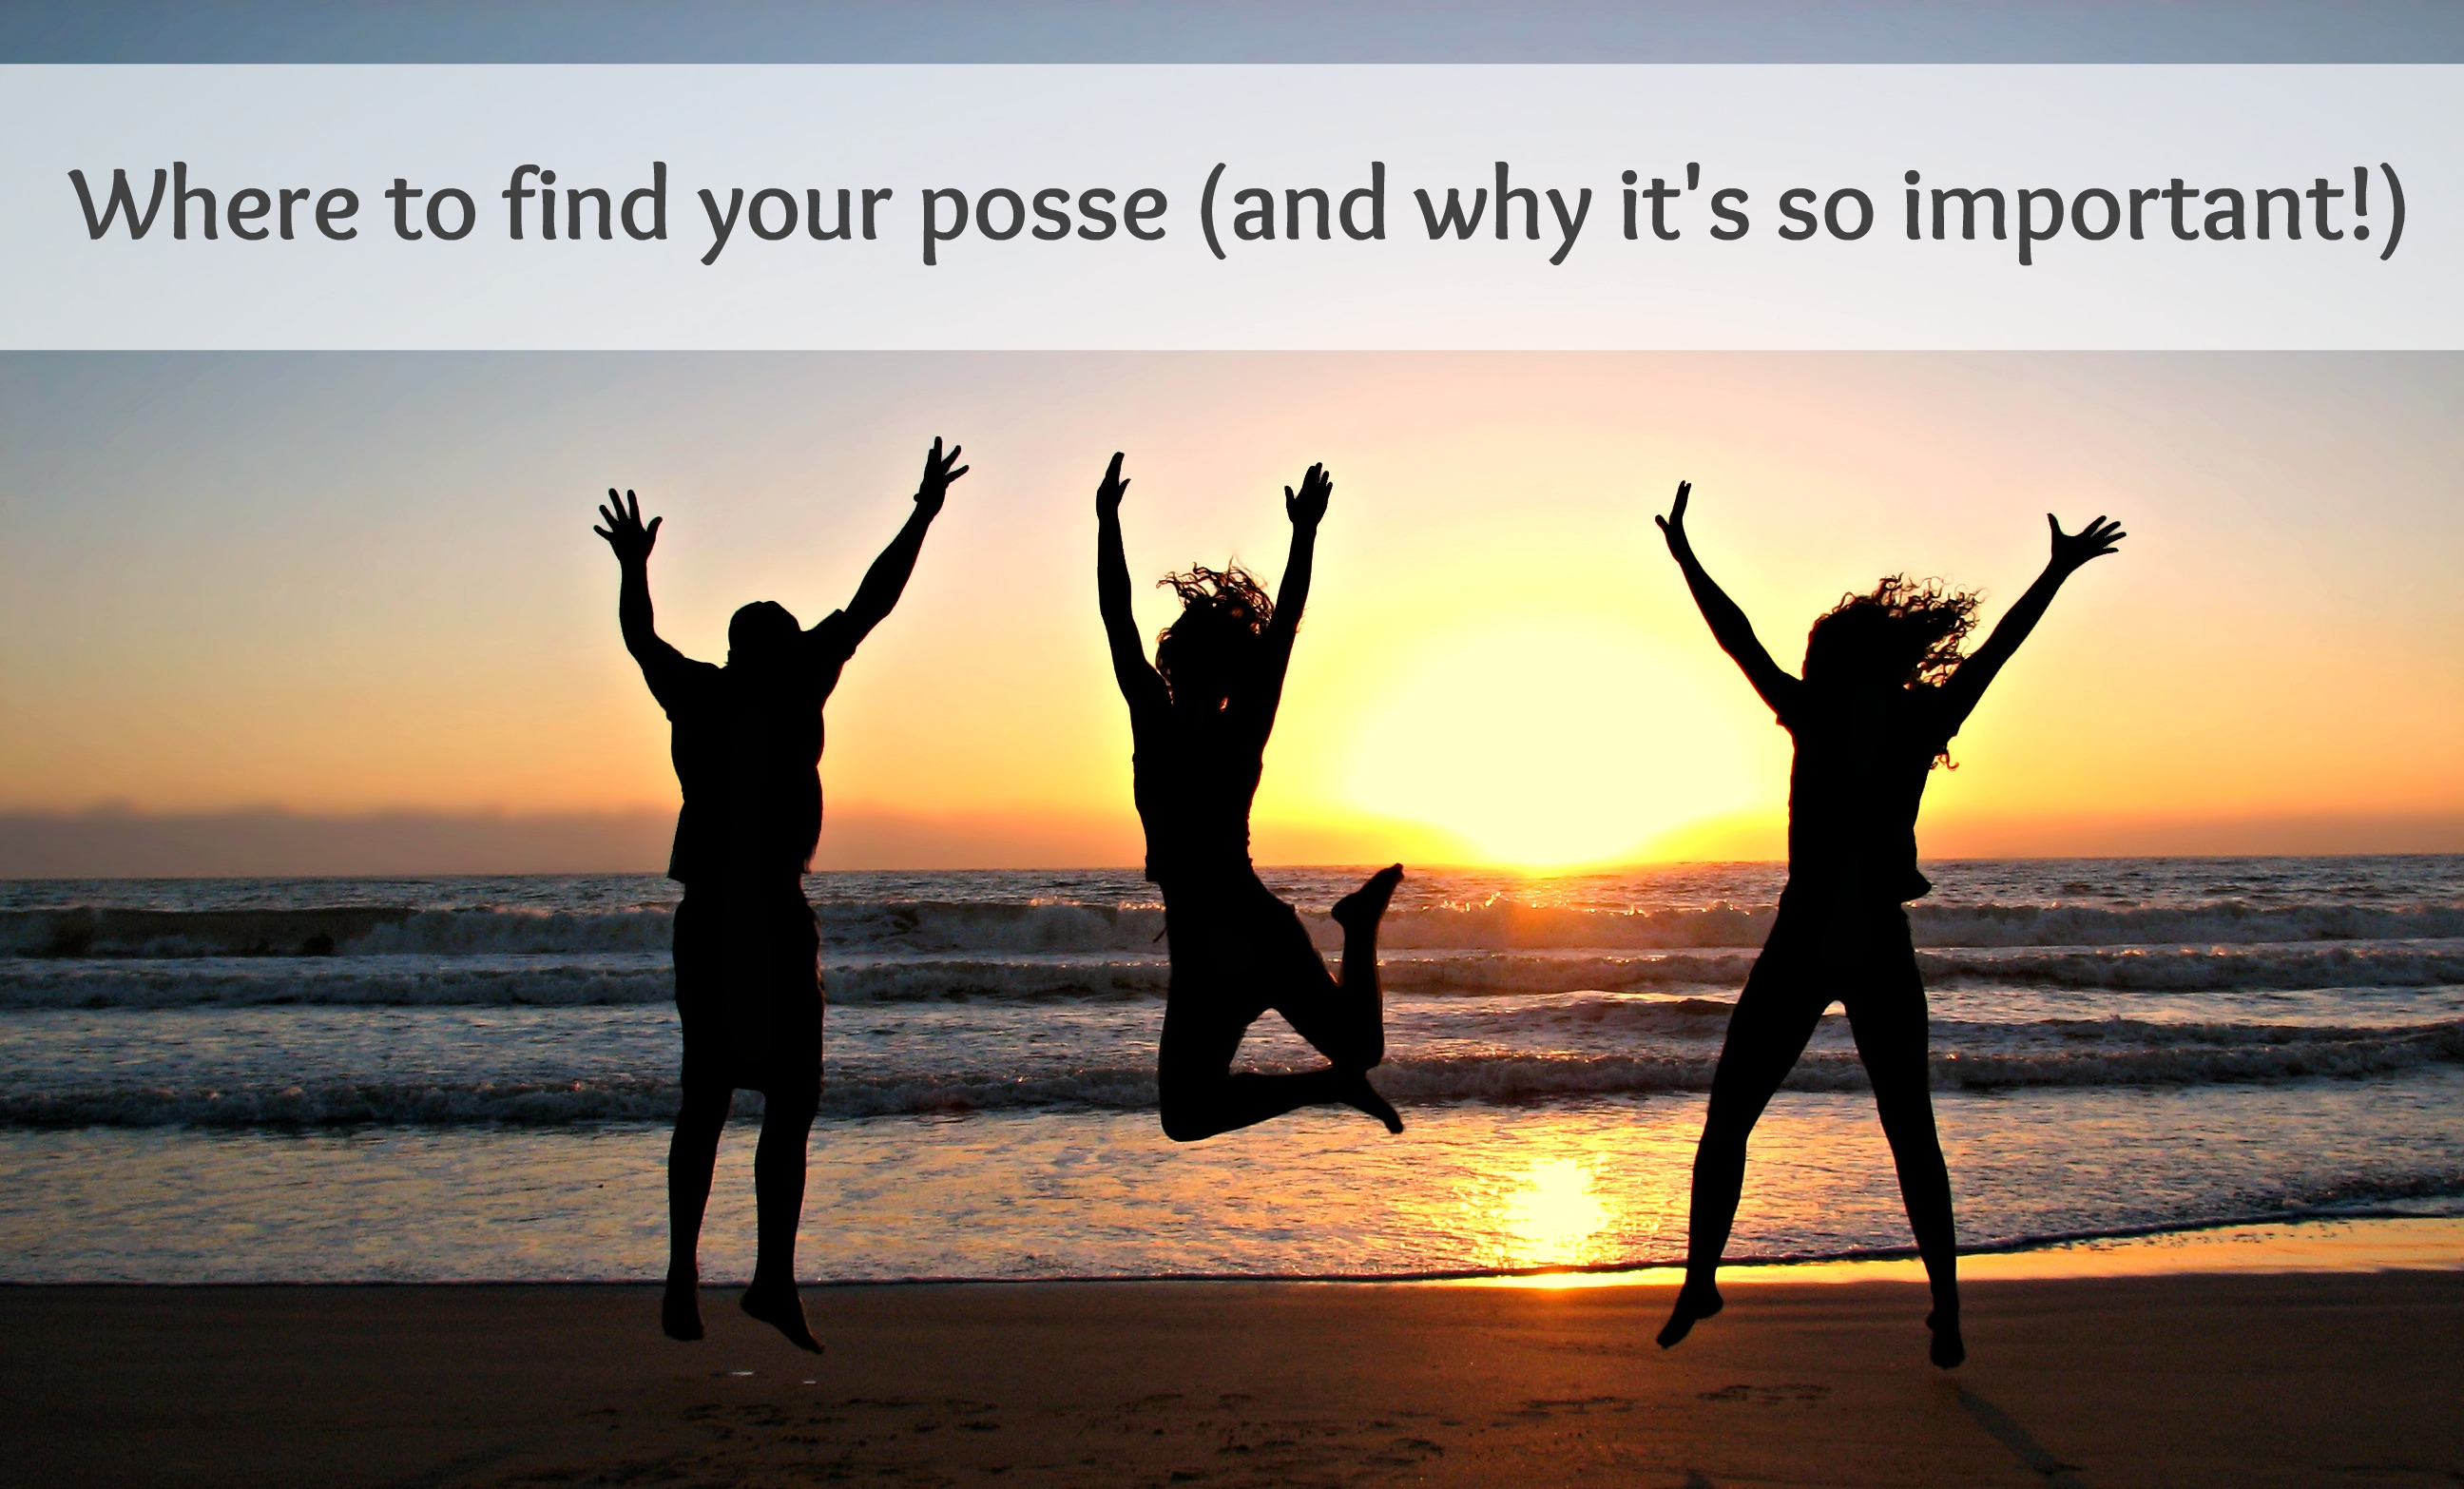 Where to find your posse (and why it's so important!)